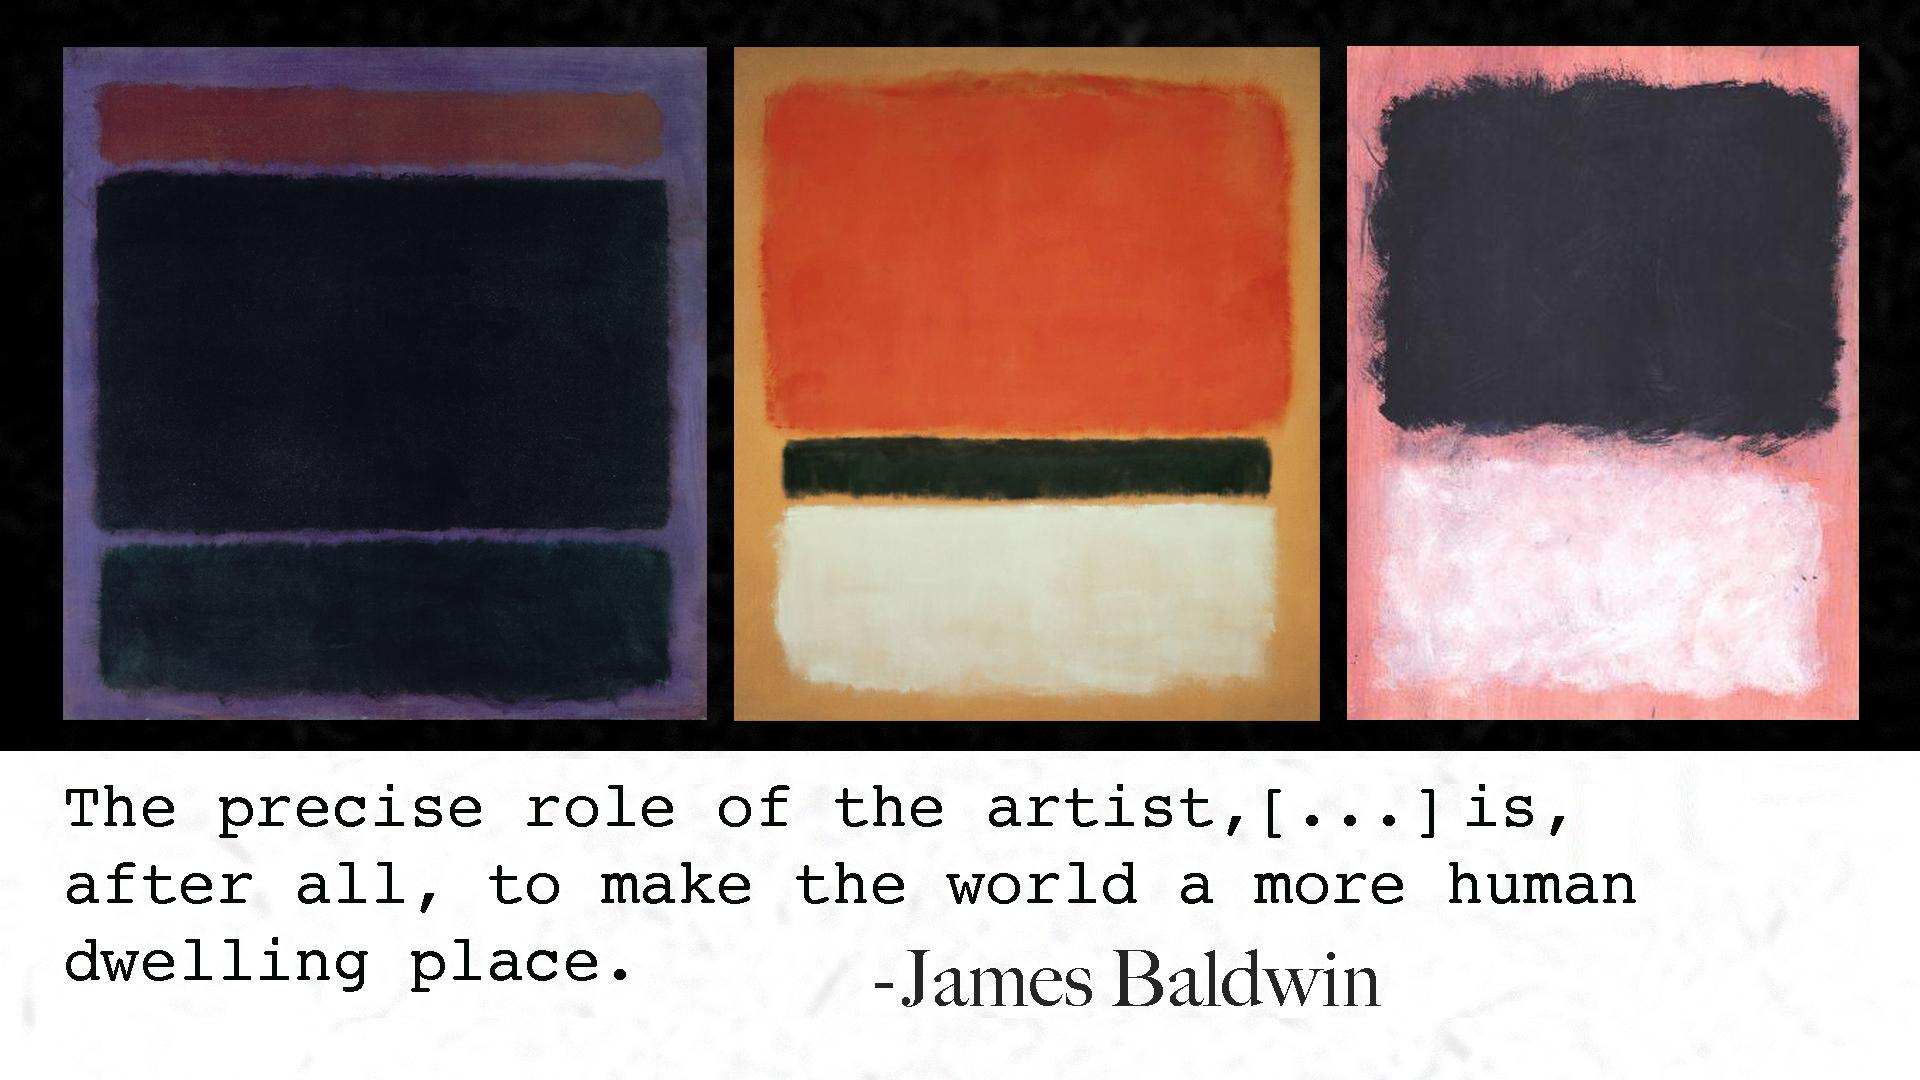 """The precise role of the artist, […] is, after all, to make the world a more human dwelling place."" —James Baldwin (Mark Rothko Paintings) [1920×1080] [oc]"